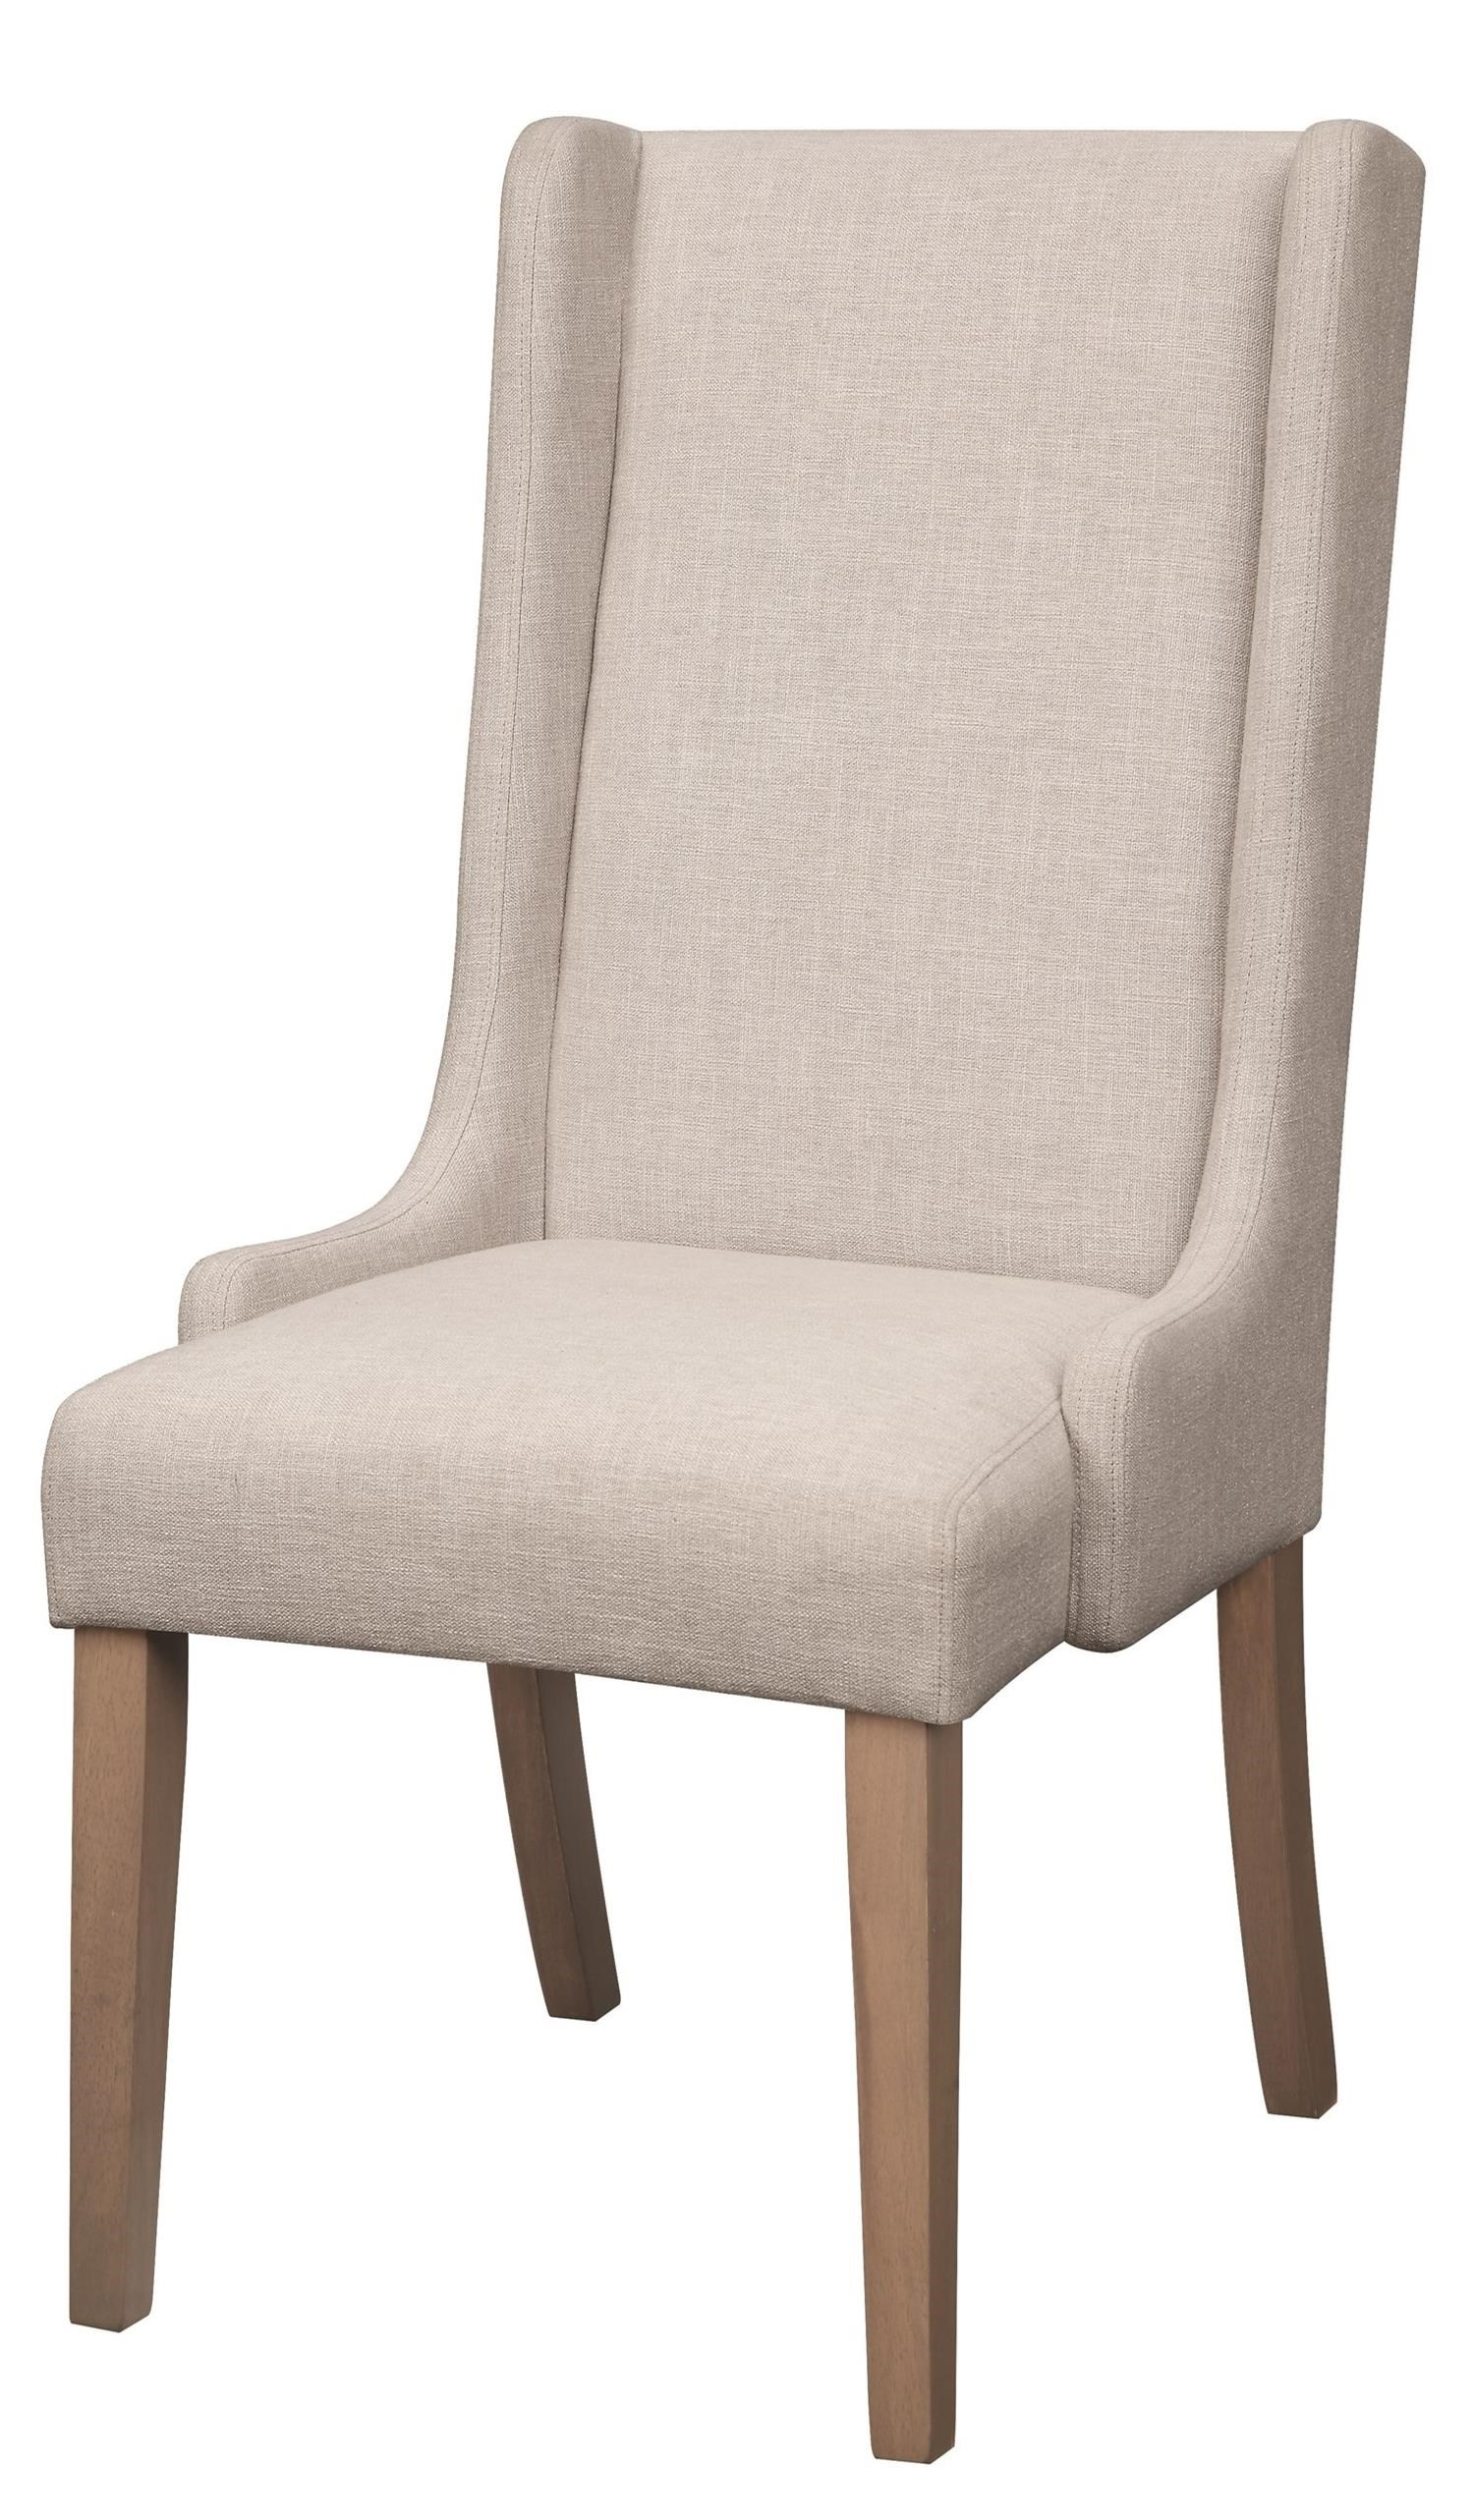 Coaster Dining Chairs and Bar Stools Dining Chair - Item Number: 100353